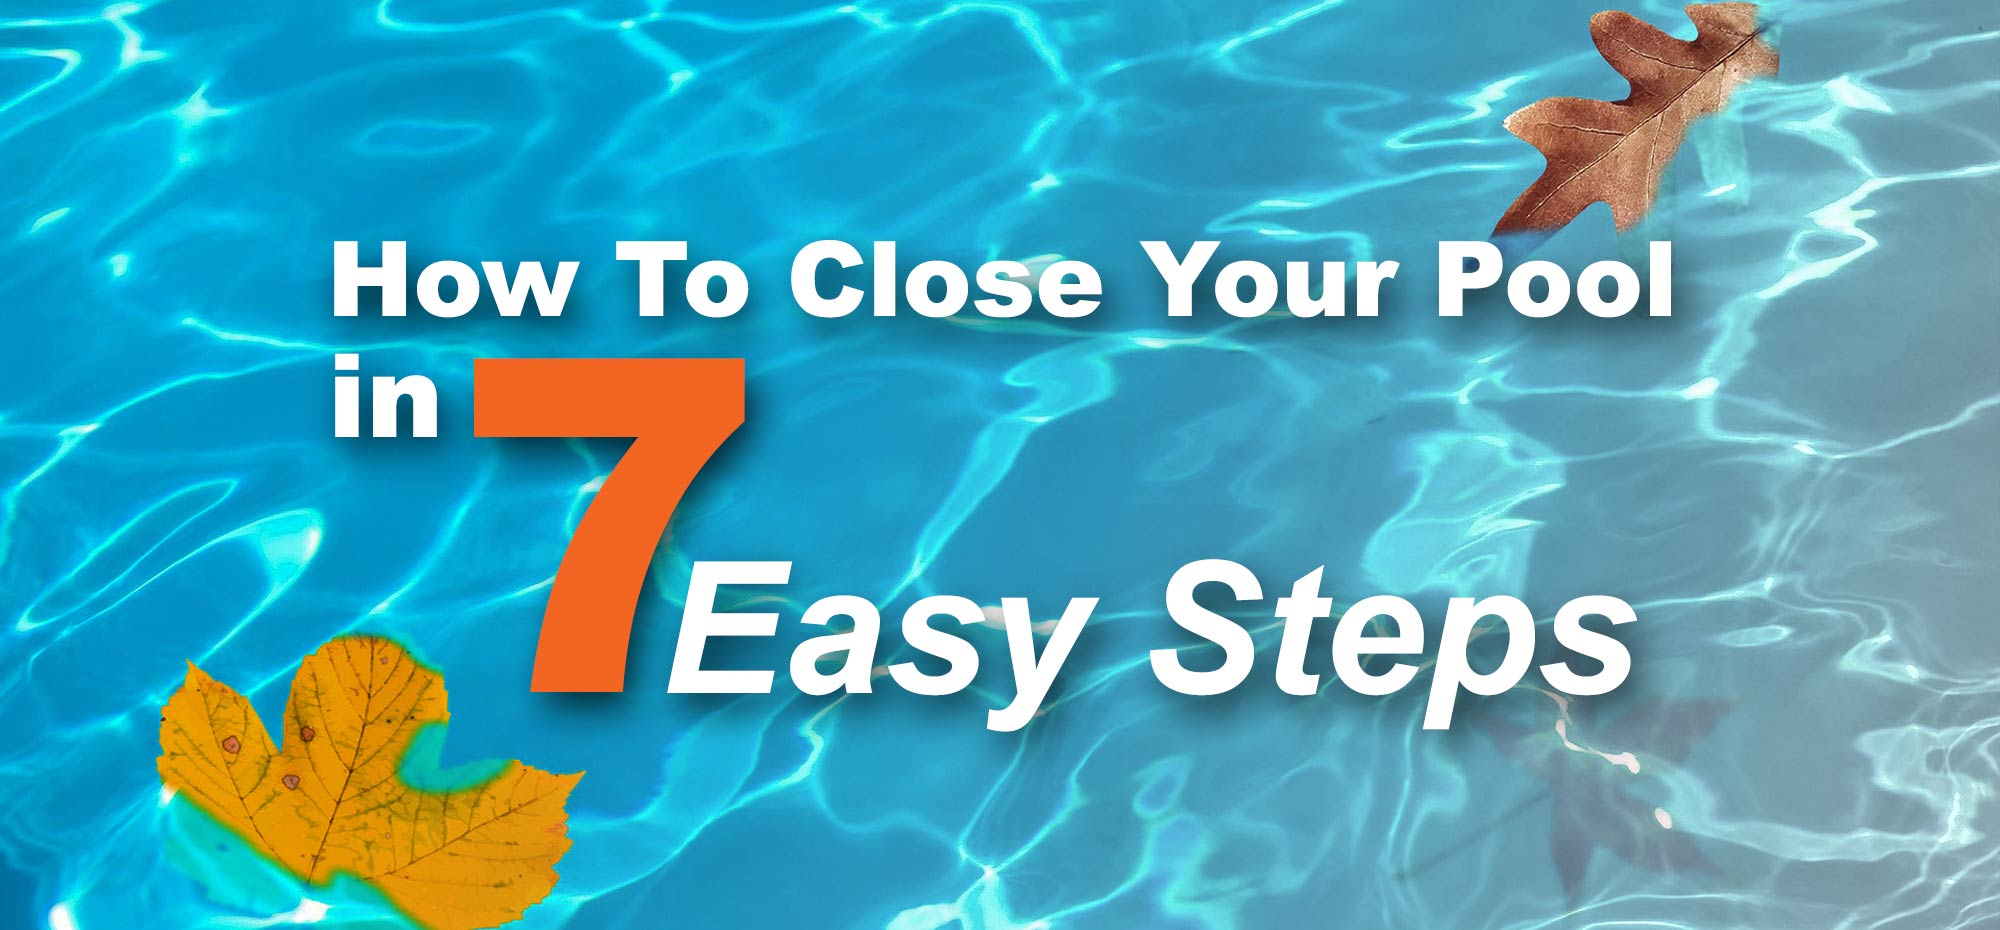 How to Close Your Pool in 7 Easy Steps